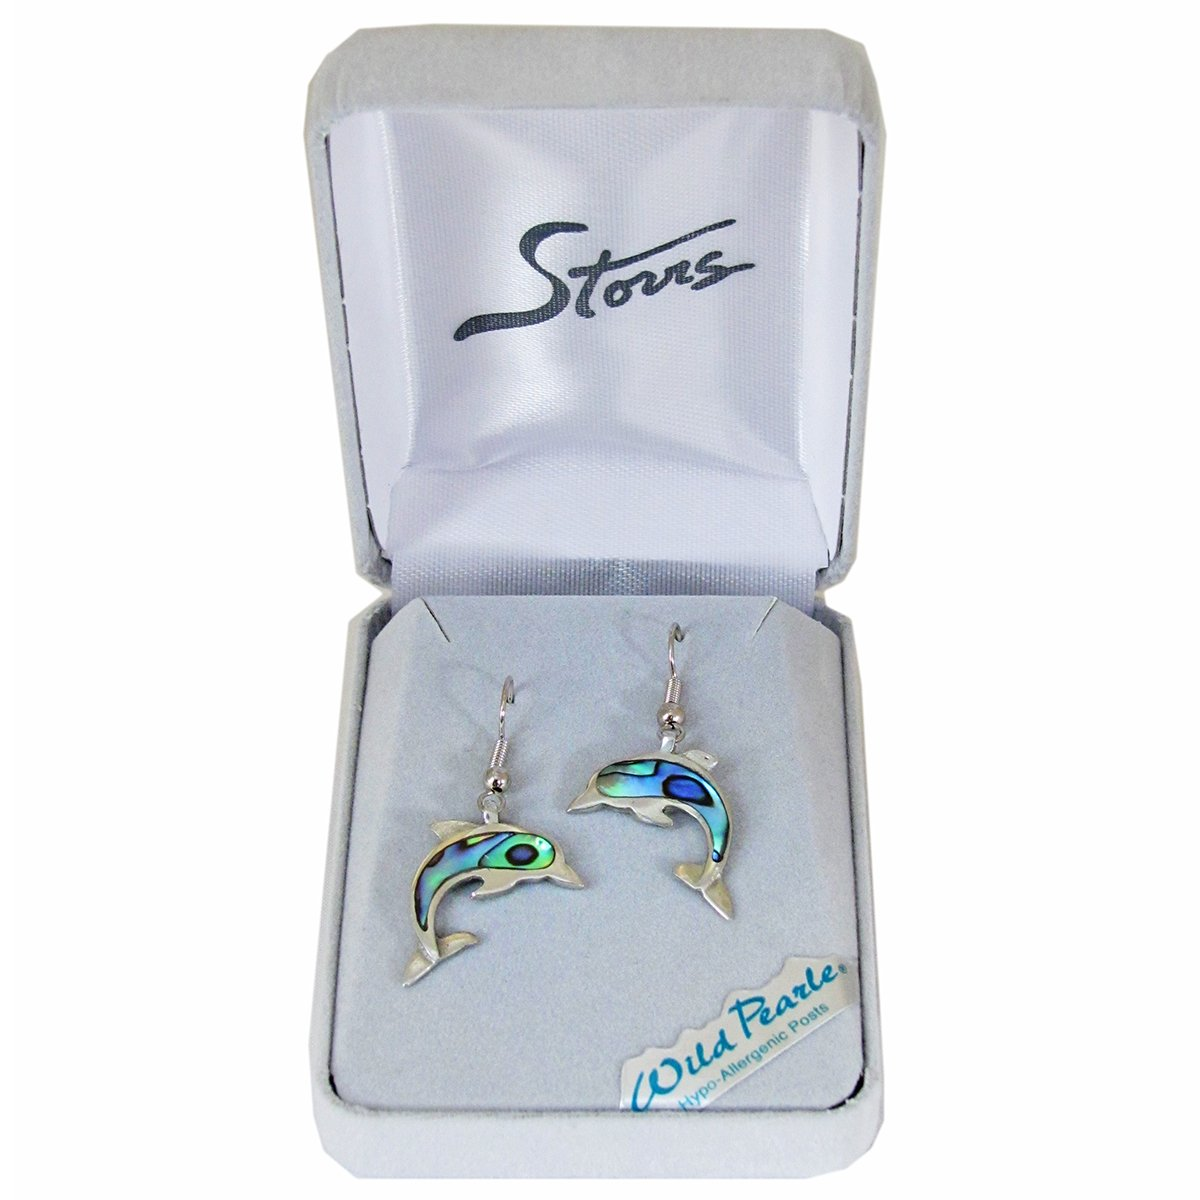 23+ Wild pearle abalone jewelry by storrs ideas in 2021